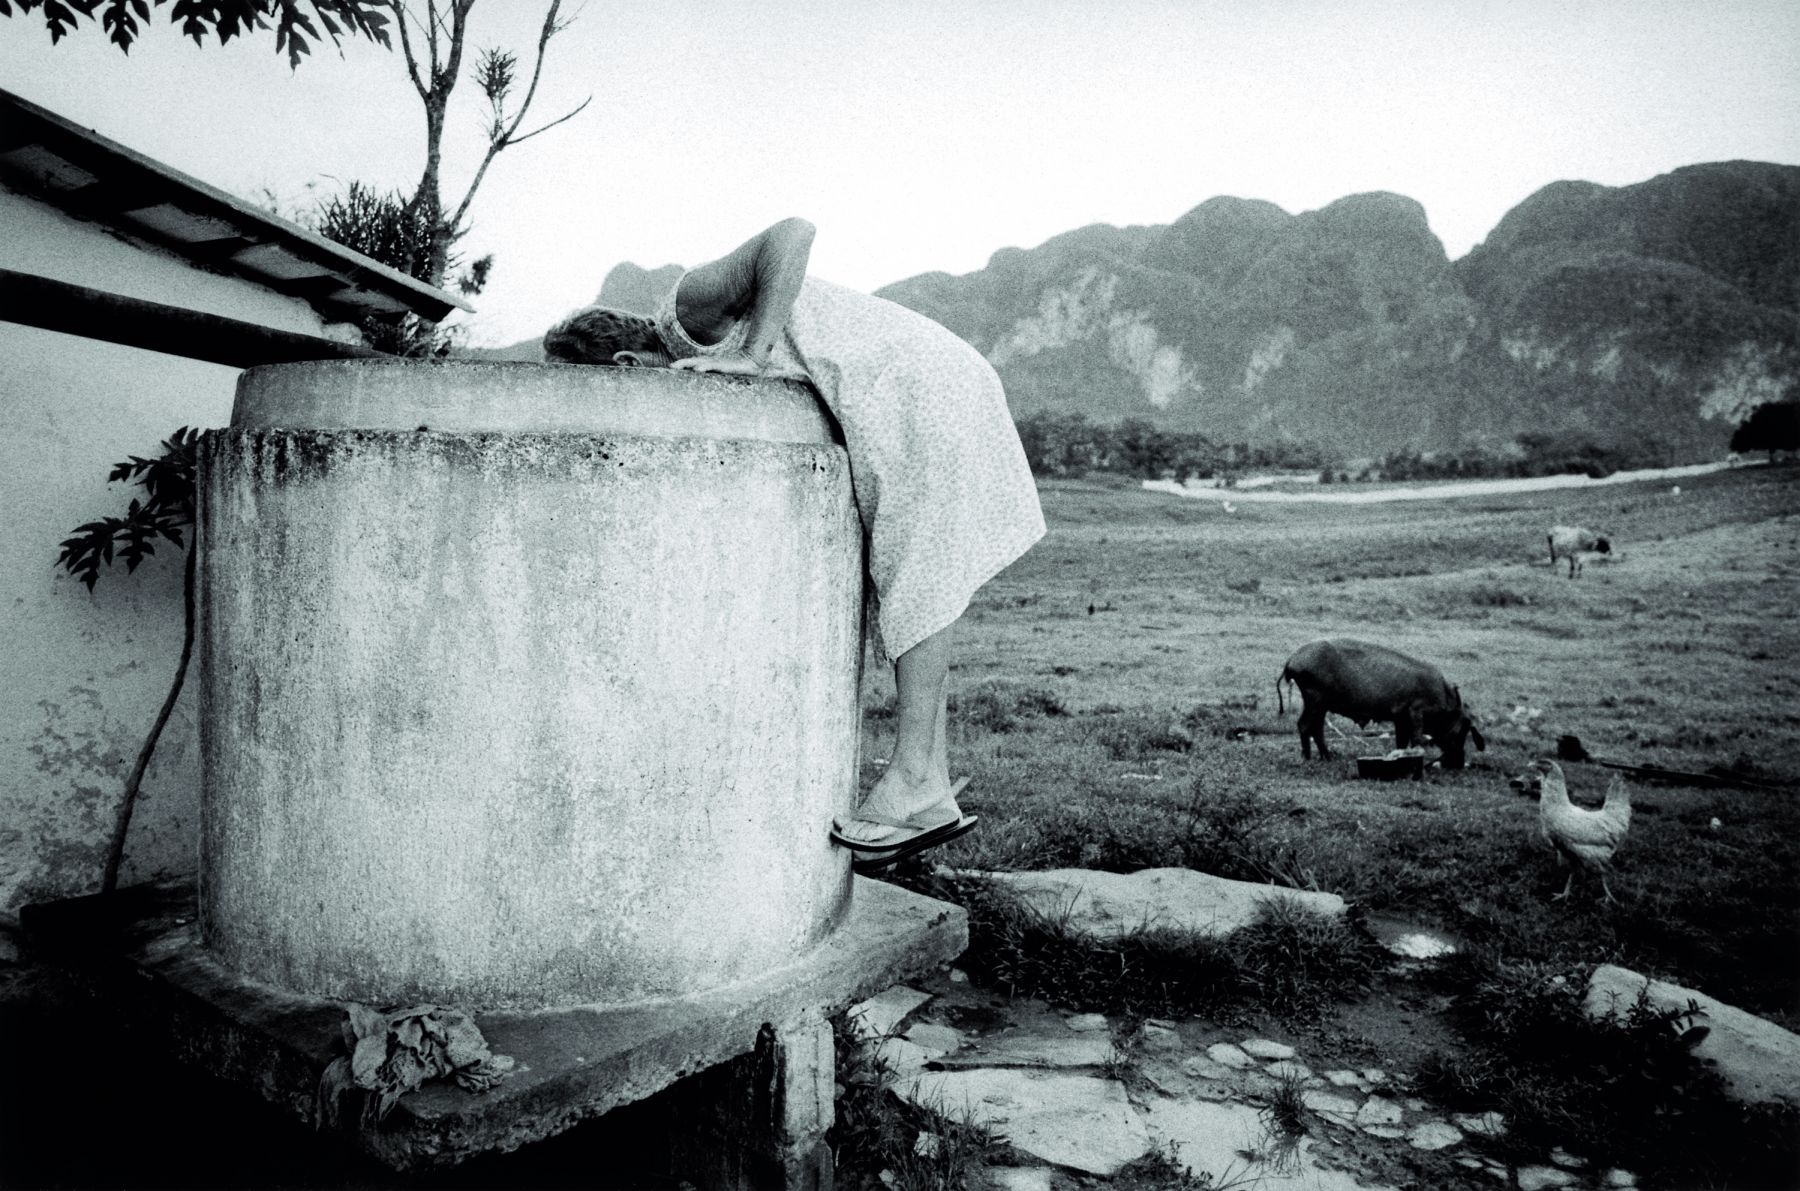 SUSAN S. BANK, Ana in Tanque, 2002-2007